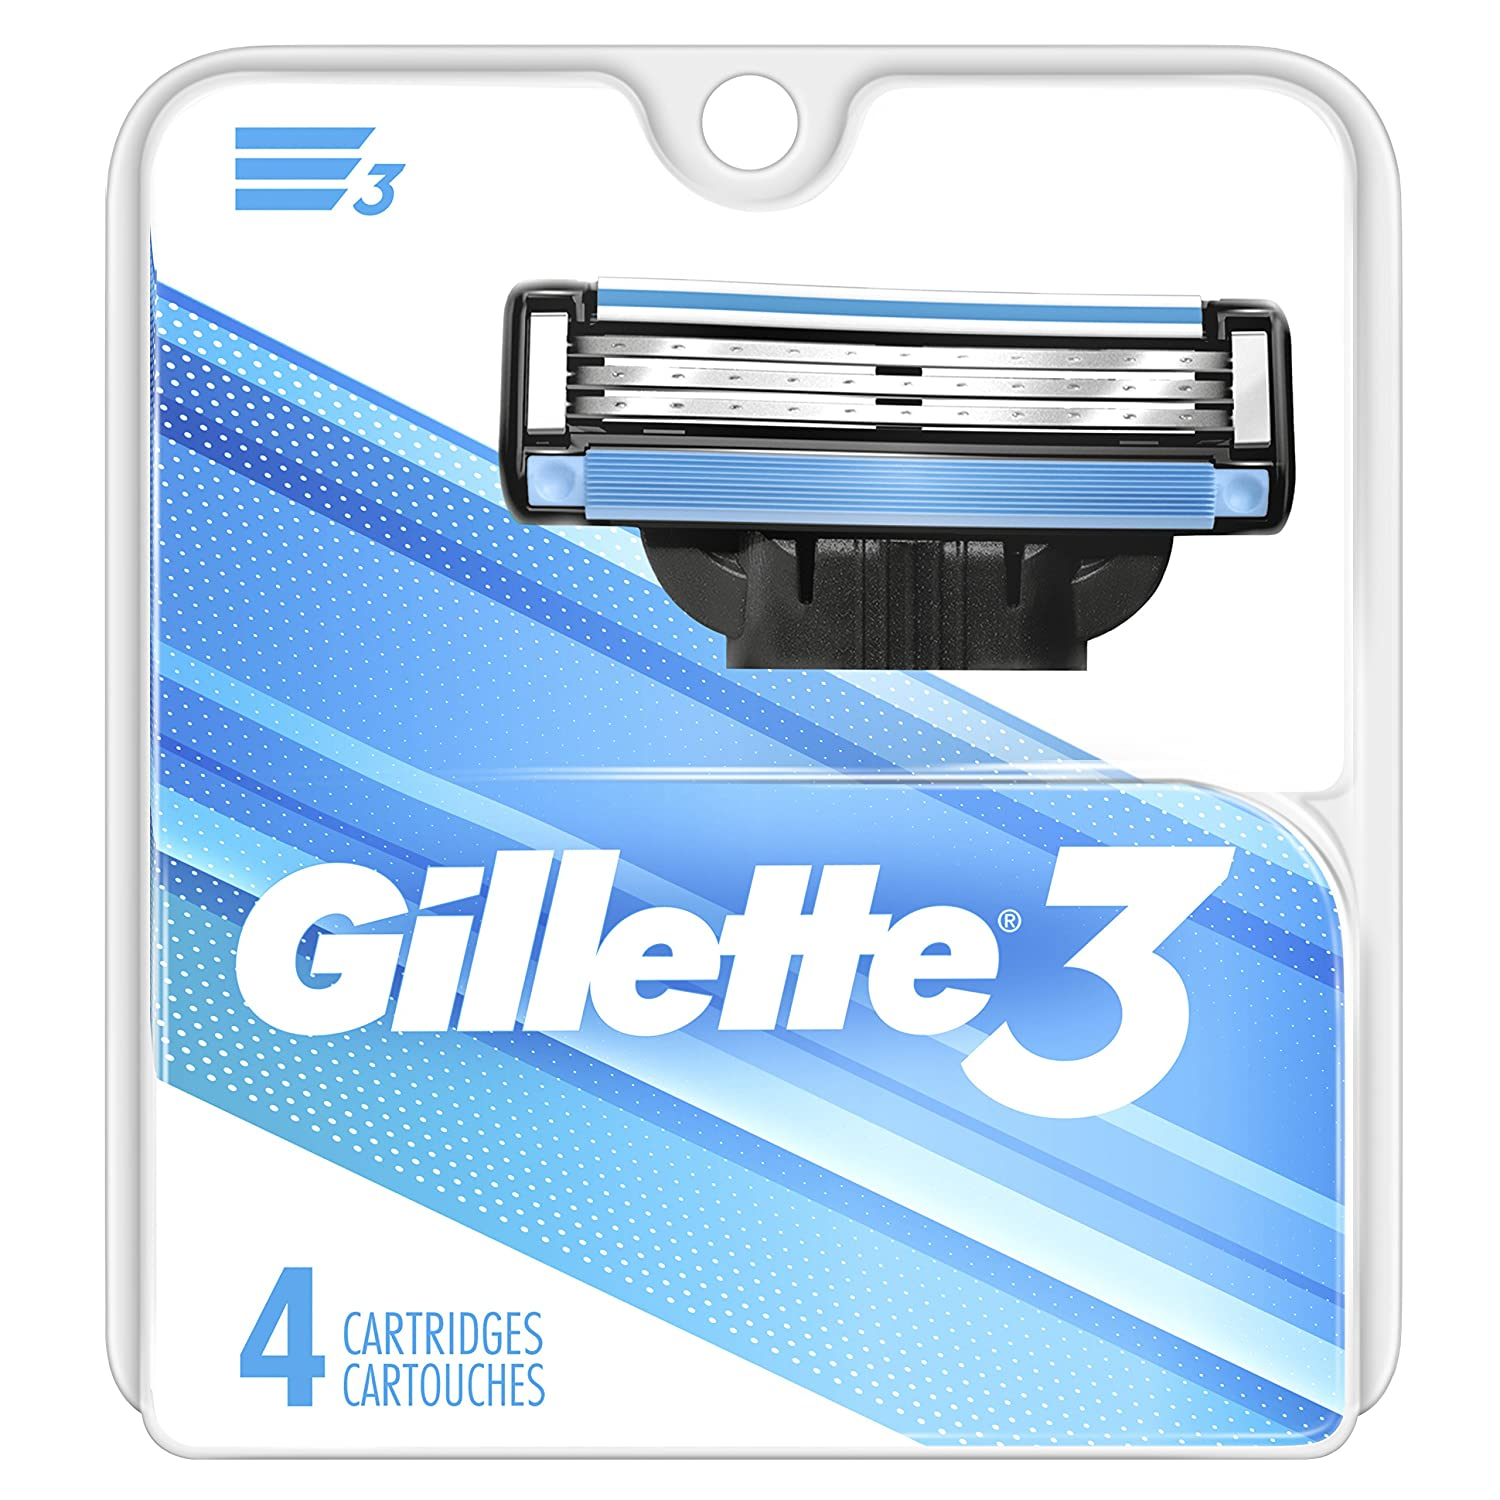 Gillette 3 Men's Razor Blade Refill Catridges, 8 Count Procter and Gamble